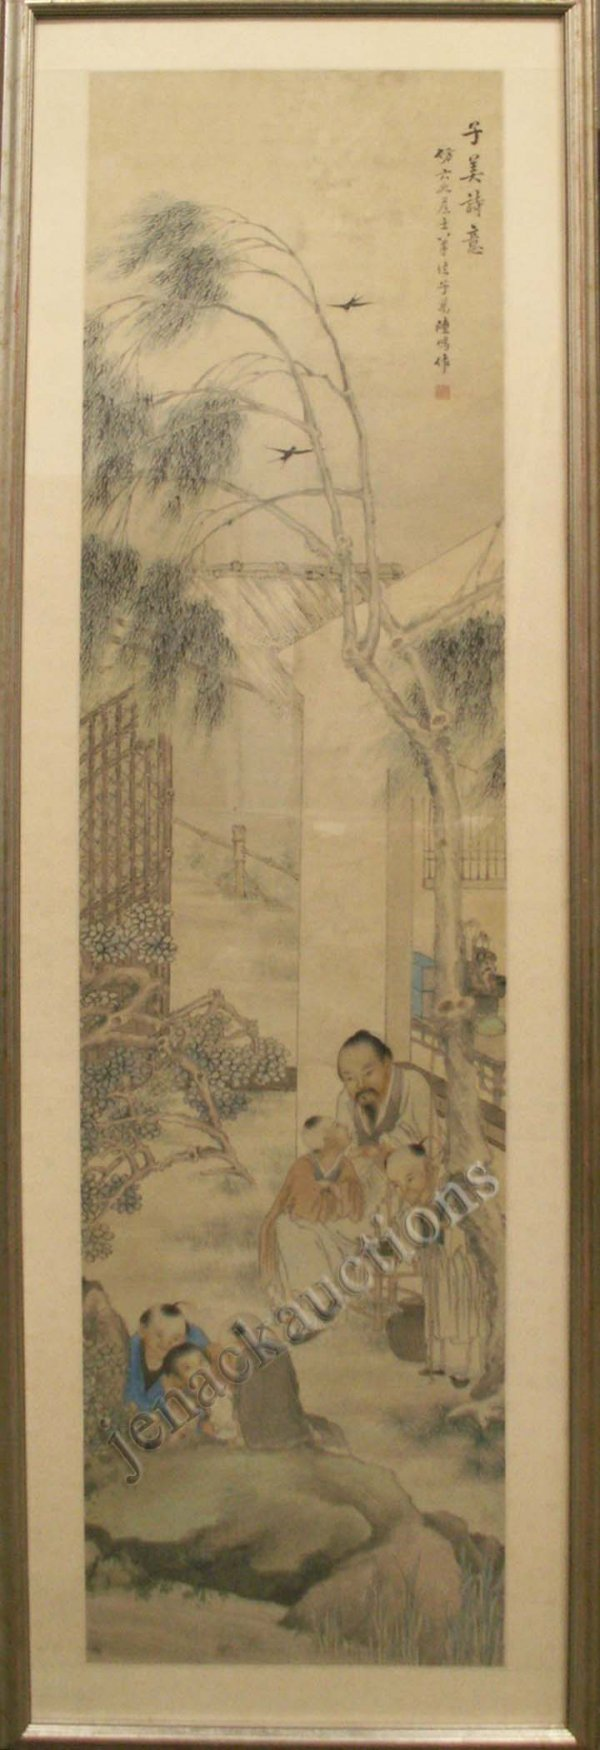 1023: CHINESE SCROLL PAINTING ON PAPER, FIGURES